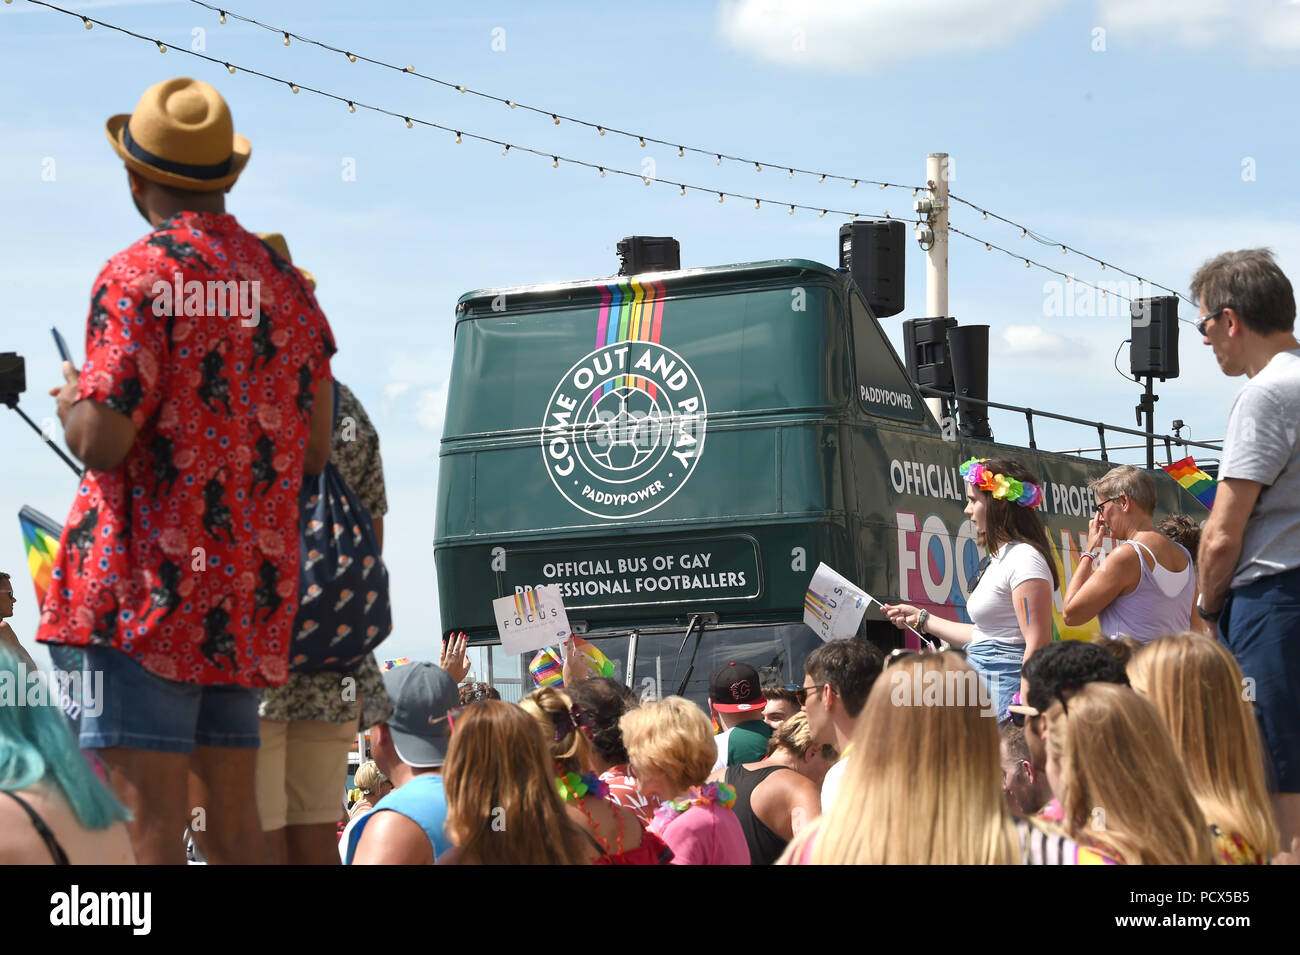 Brighton UK 4th August 2018 - The controversial Paddy Power bus with its message for professional footballers to come out joins the Brighton Pride Parade held over this weekend in beautiful hot sunny weather . The annual Brighton Pride event attracts thousands of visitors from all over the world with Britney Spears set to perform later tonight Credit: Simon Dack/Alamy Live News - Stock Image